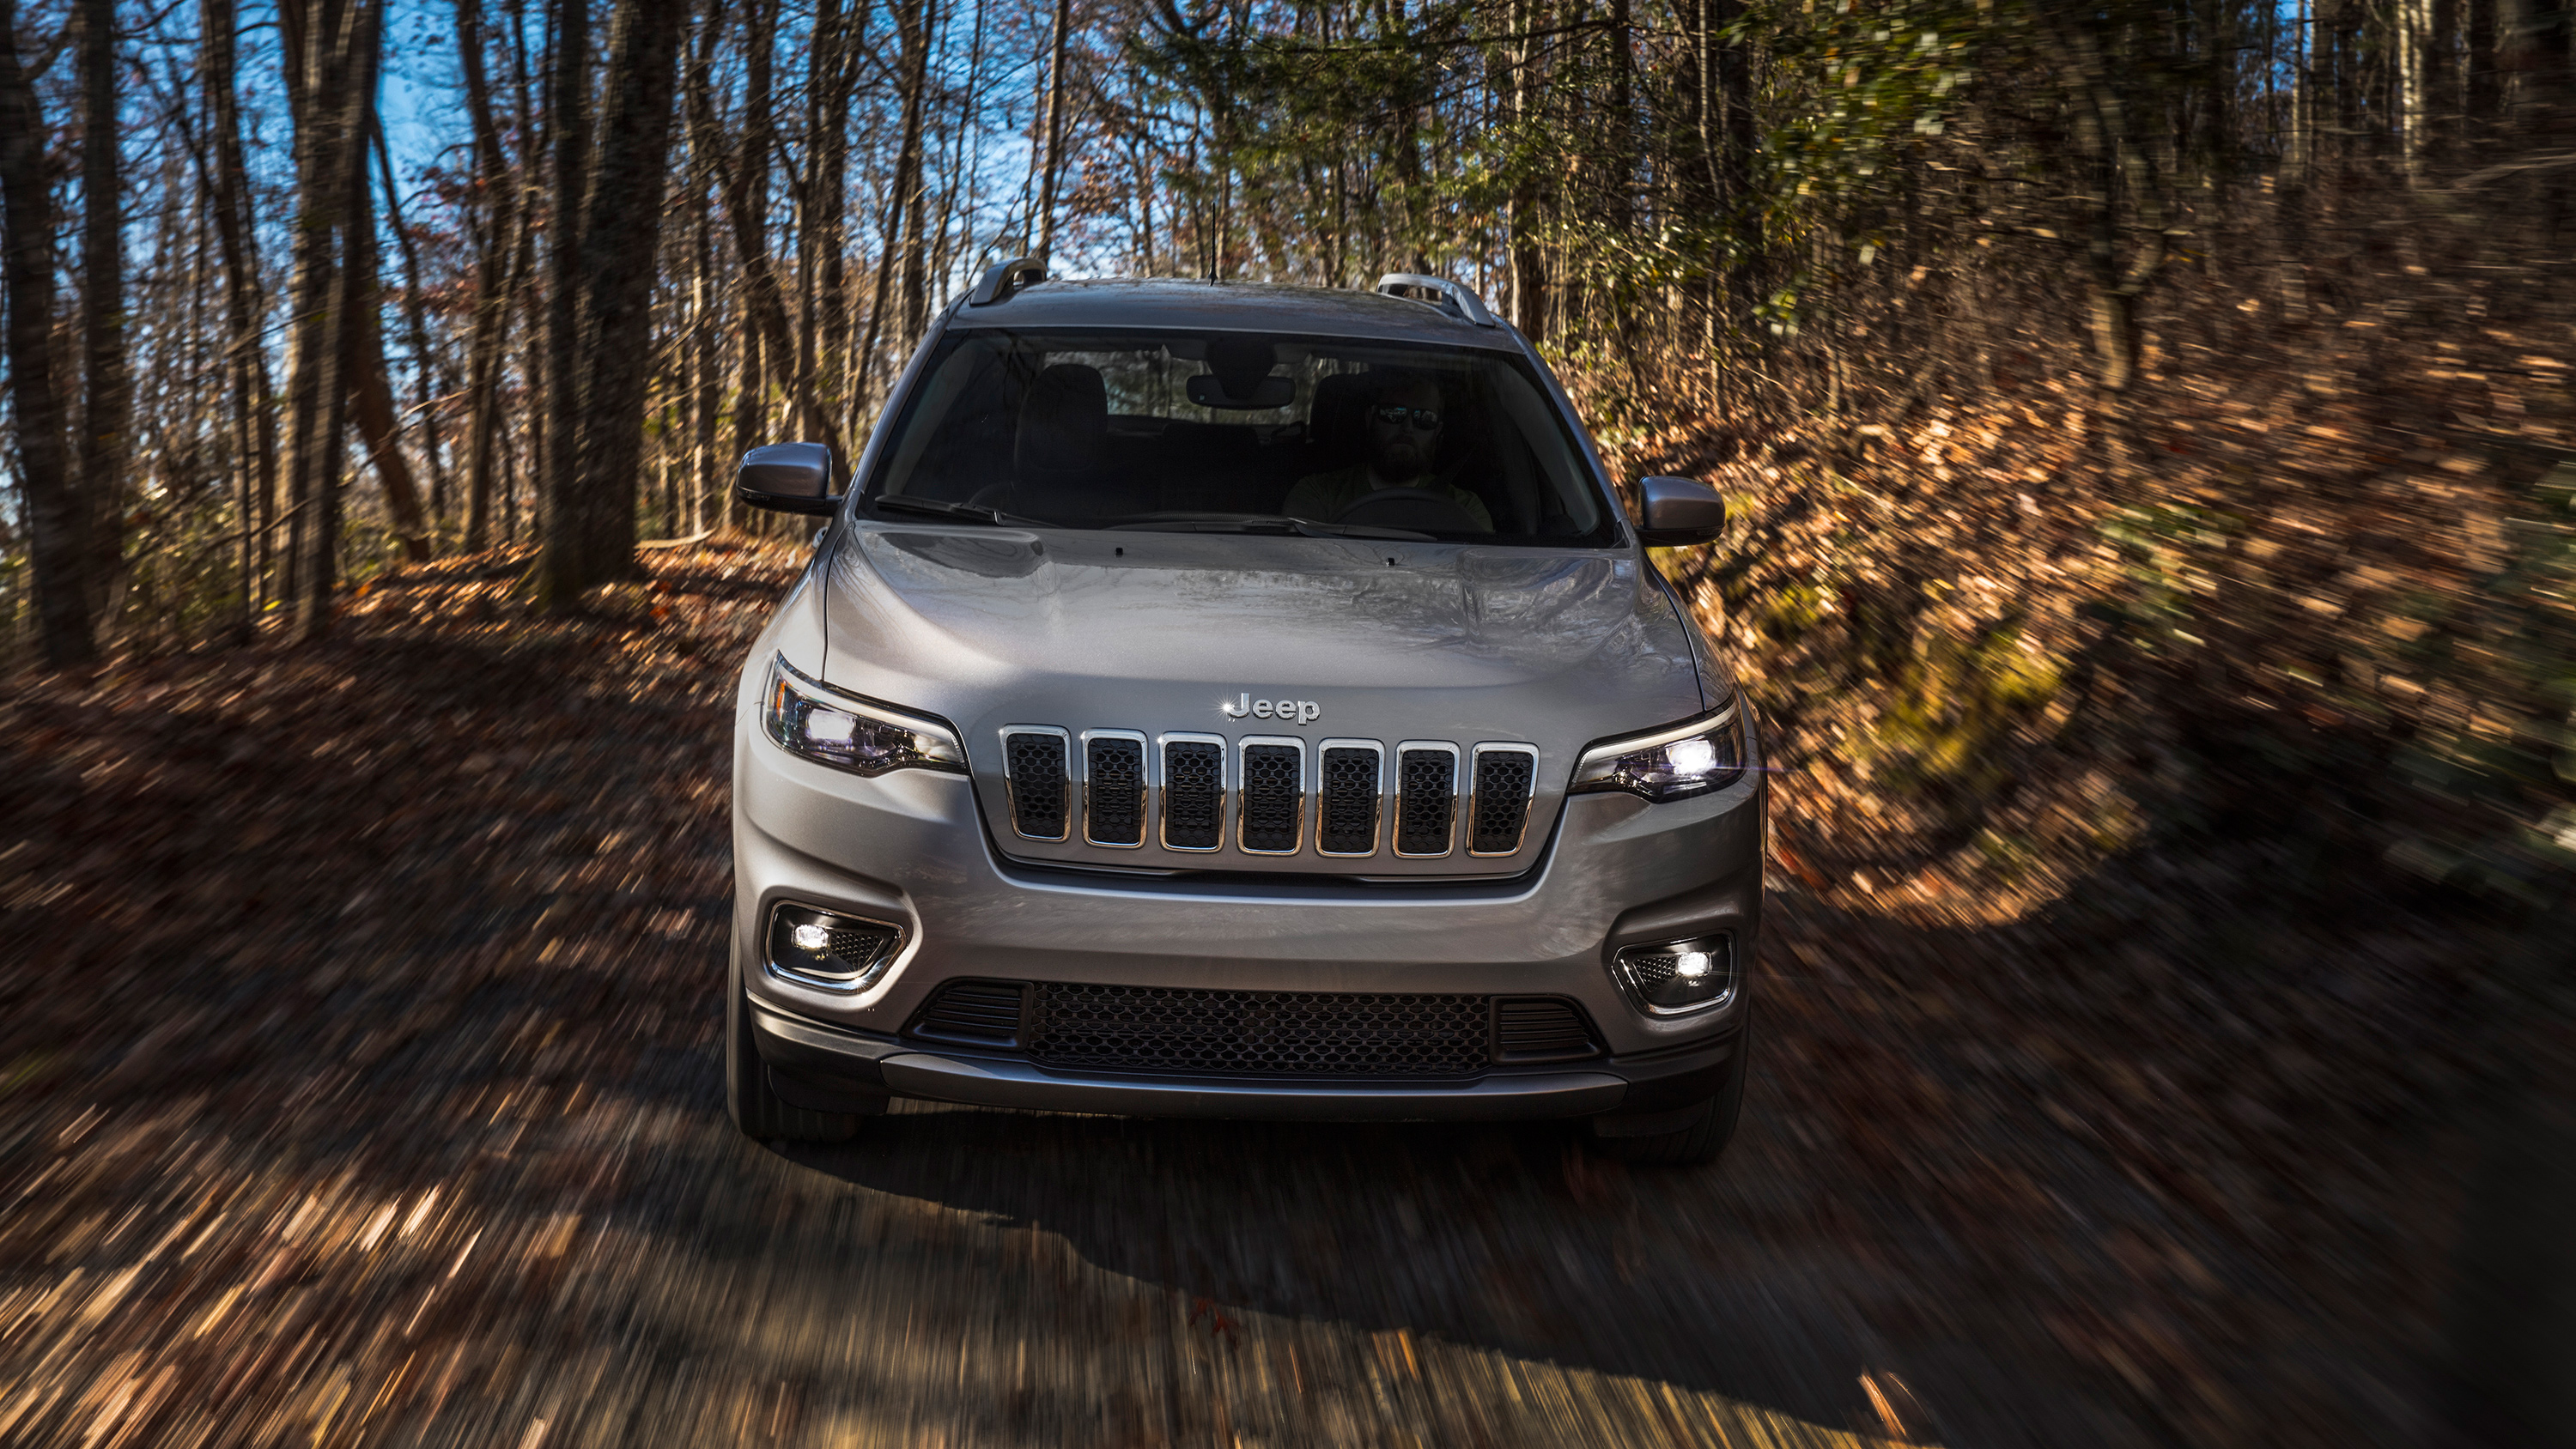 2019 jeep cherokee limited wallpaper hd car wallpapers  2019 jeep grand cherokee laredo price